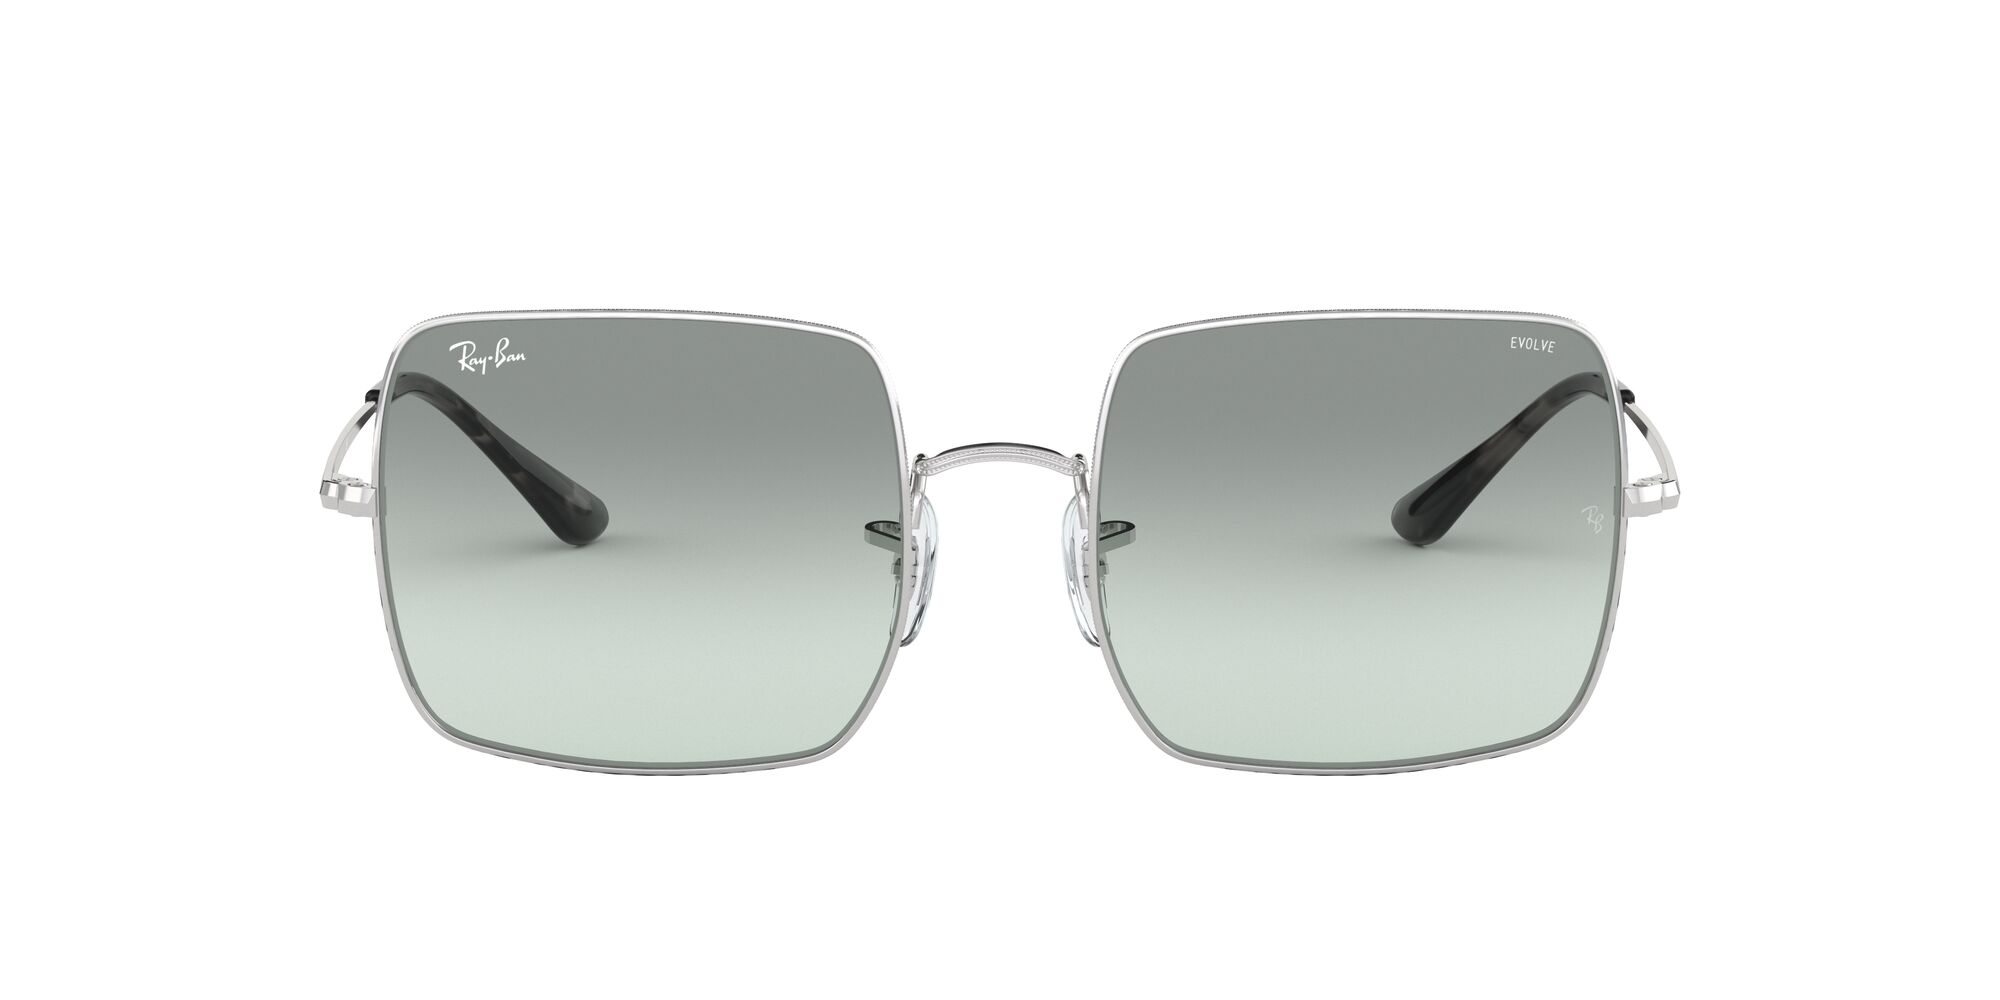 Front Ray-Ban Ray-Ban 0RB1971 9149AD 54/19 Zilver/Blauw